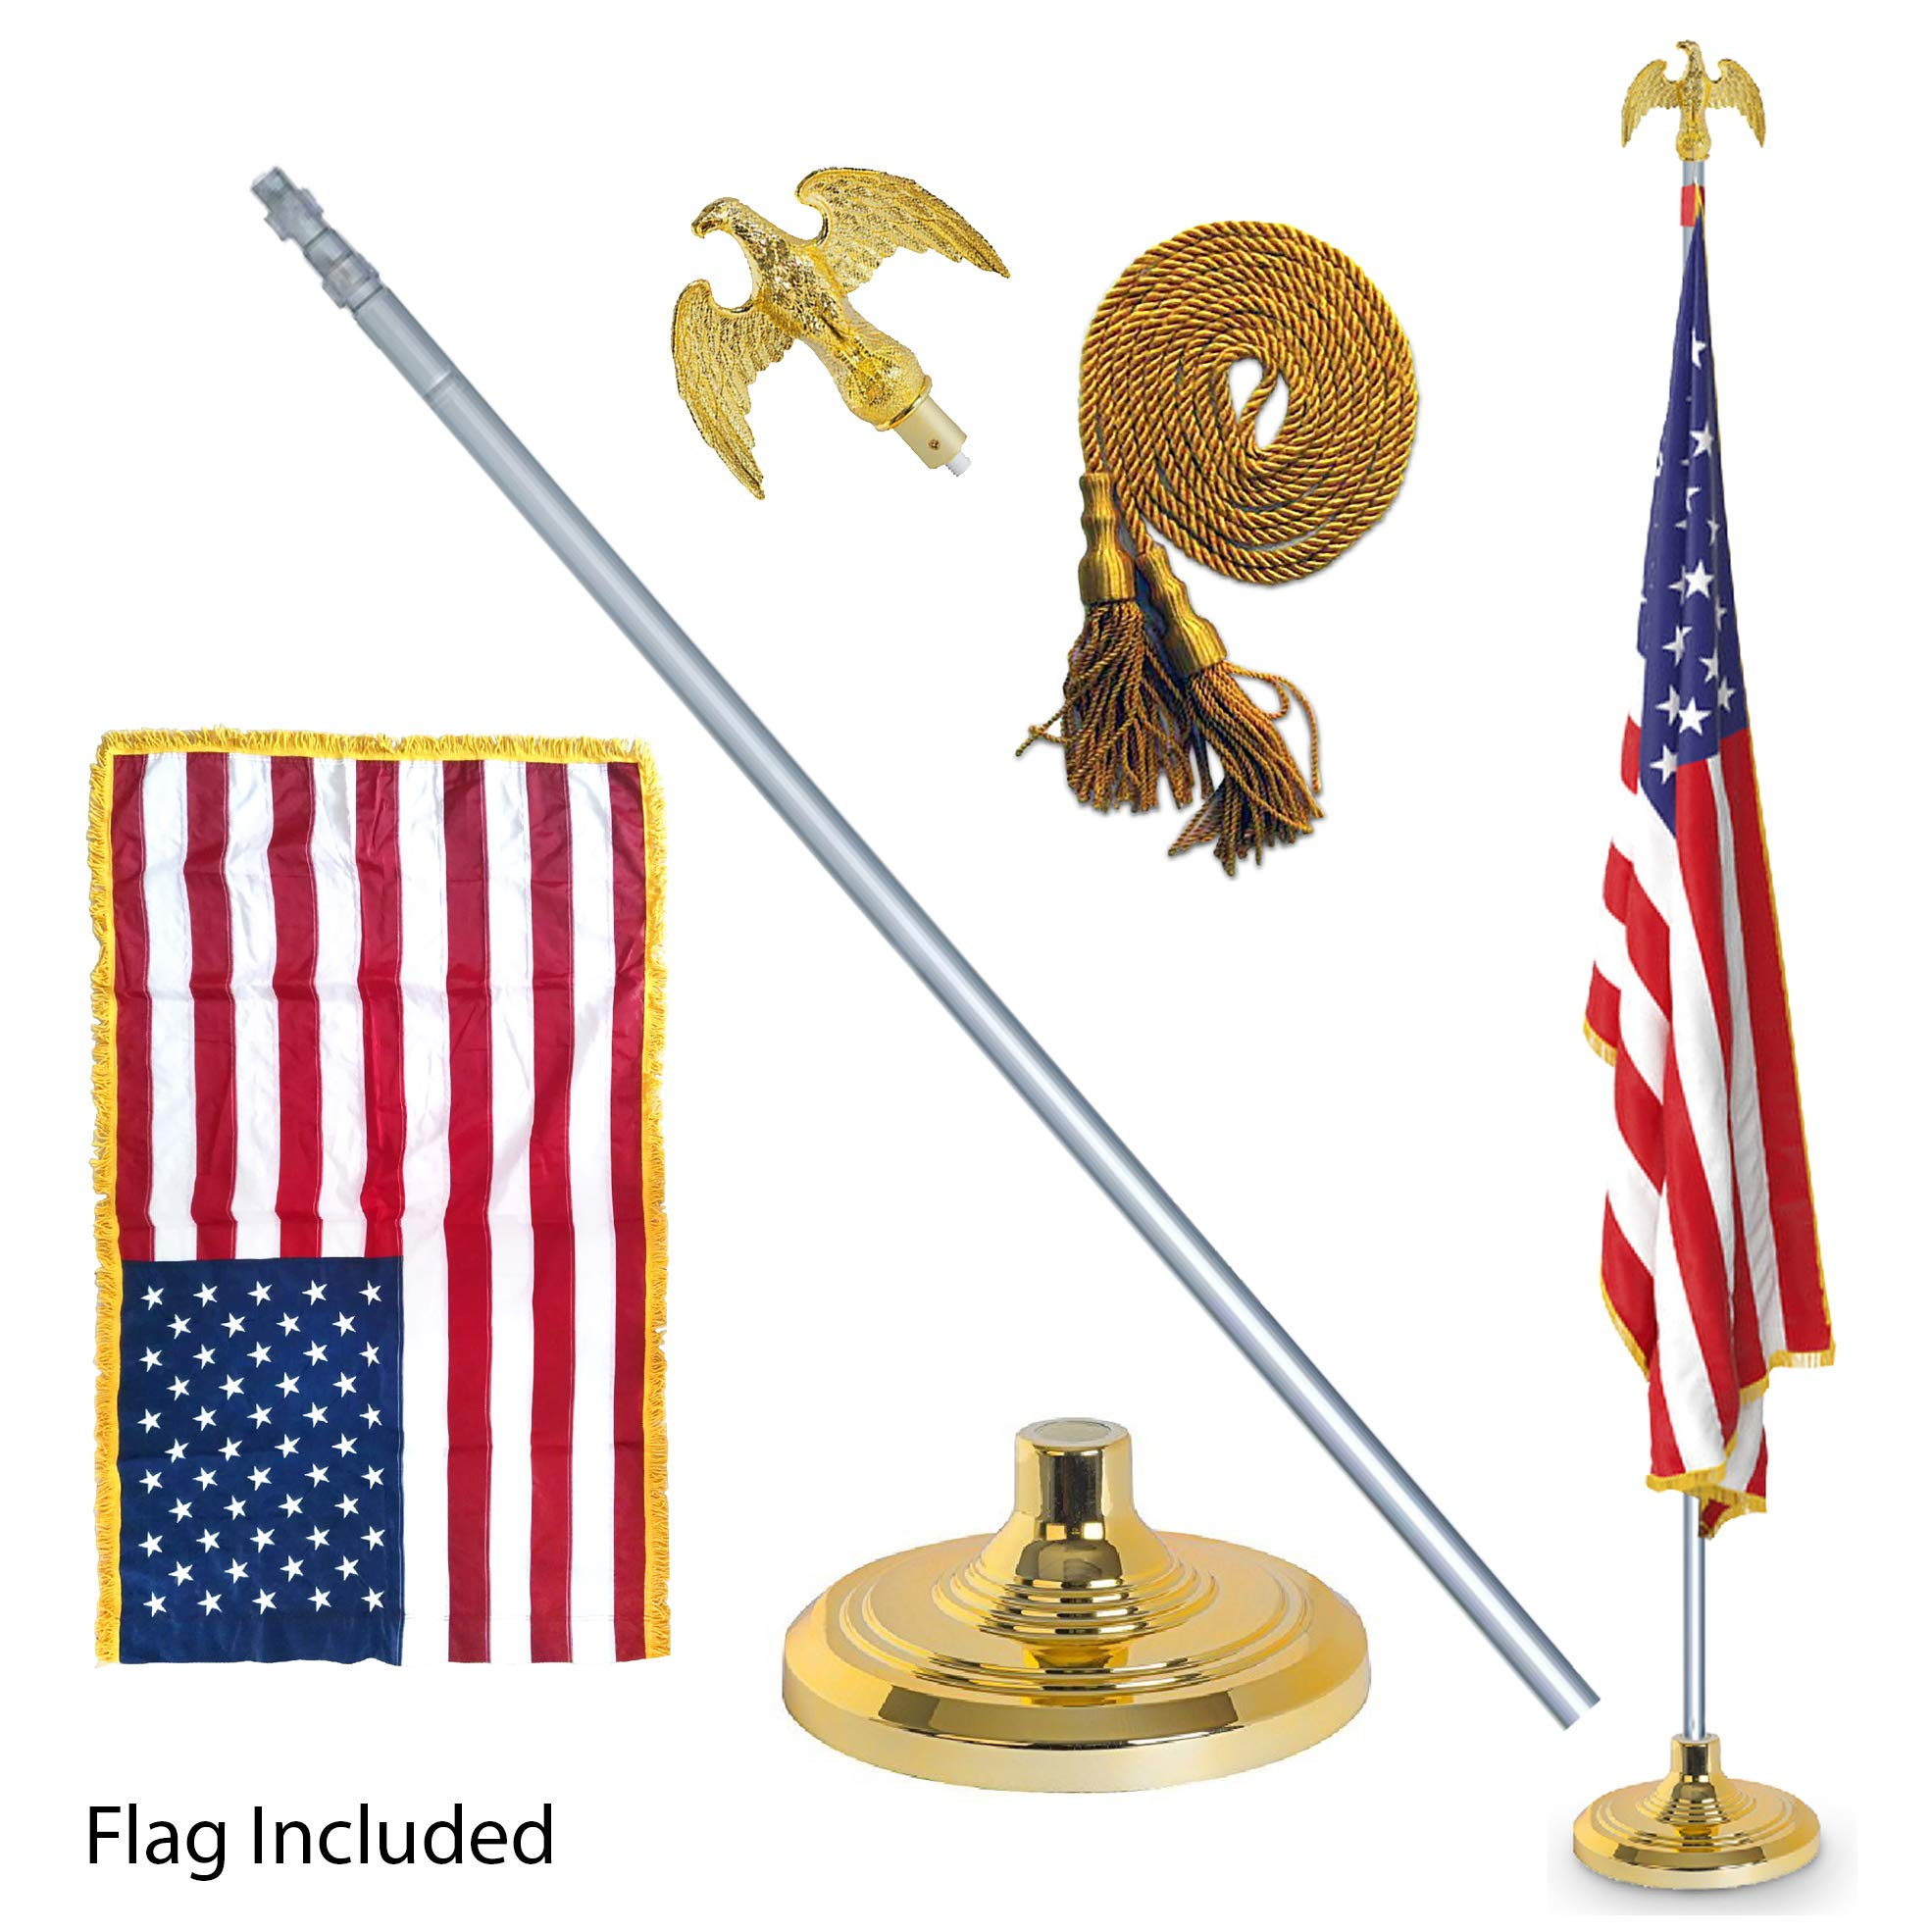 EasyGoProducts EGP-POLE-006 3' X 5' American w/Indoor Pole Kit-with Flag by EasyGoProducts (Image #1)